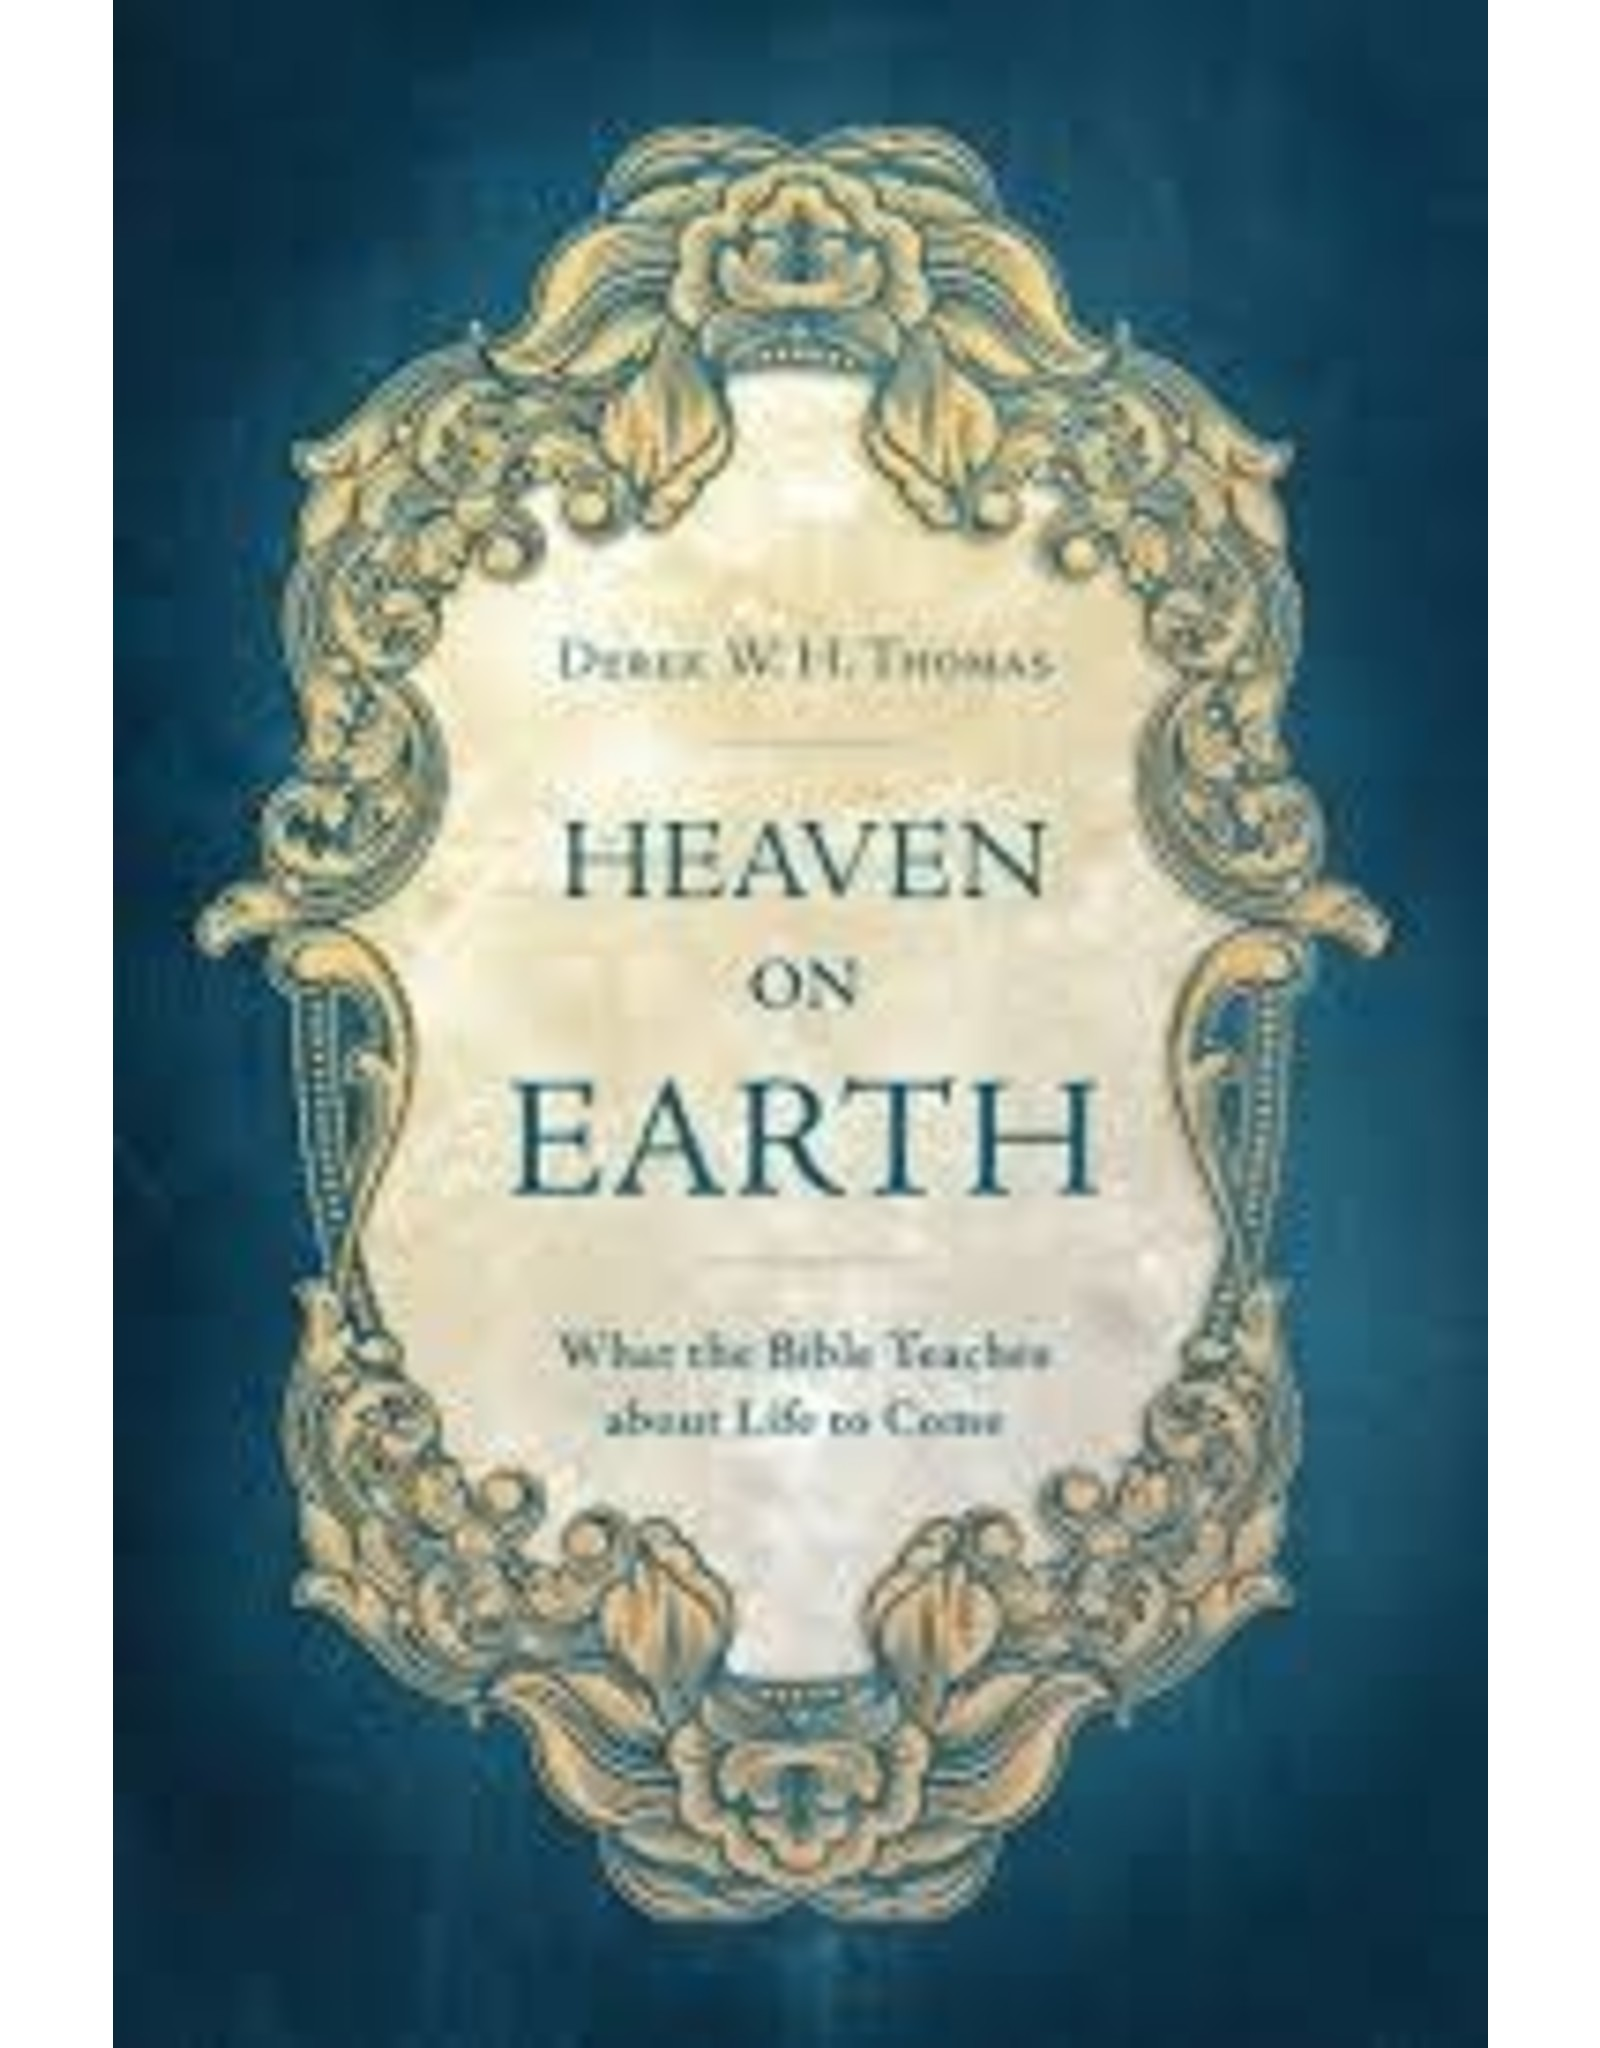 Christian Focus Publications (Atlas) Heaven on Earth: What the Bible Teaches about Life to Come